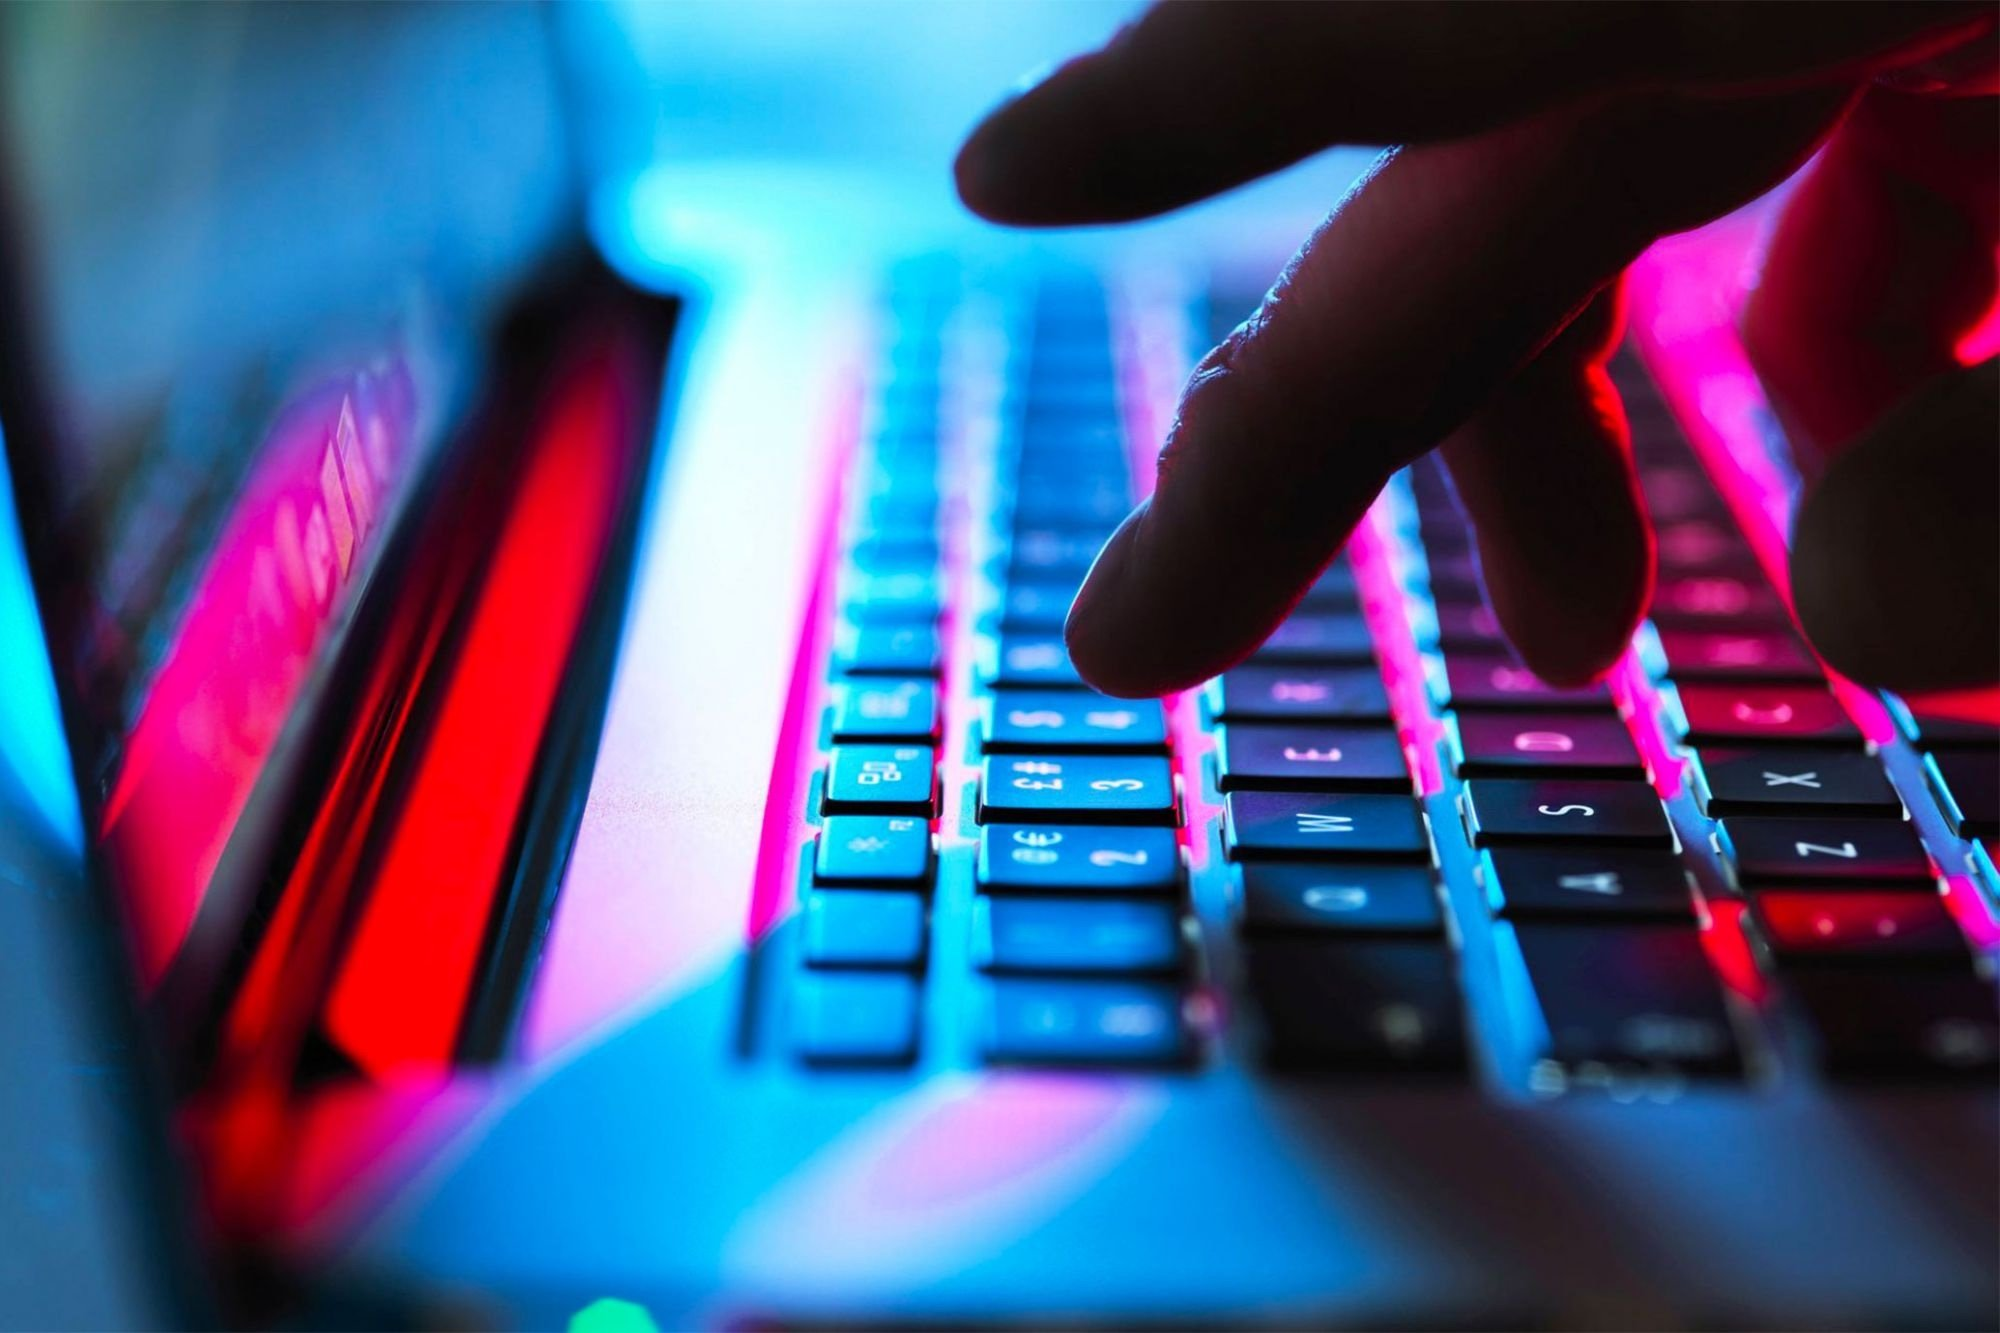 Cybercrime Rising: 10 ways to protect your business data